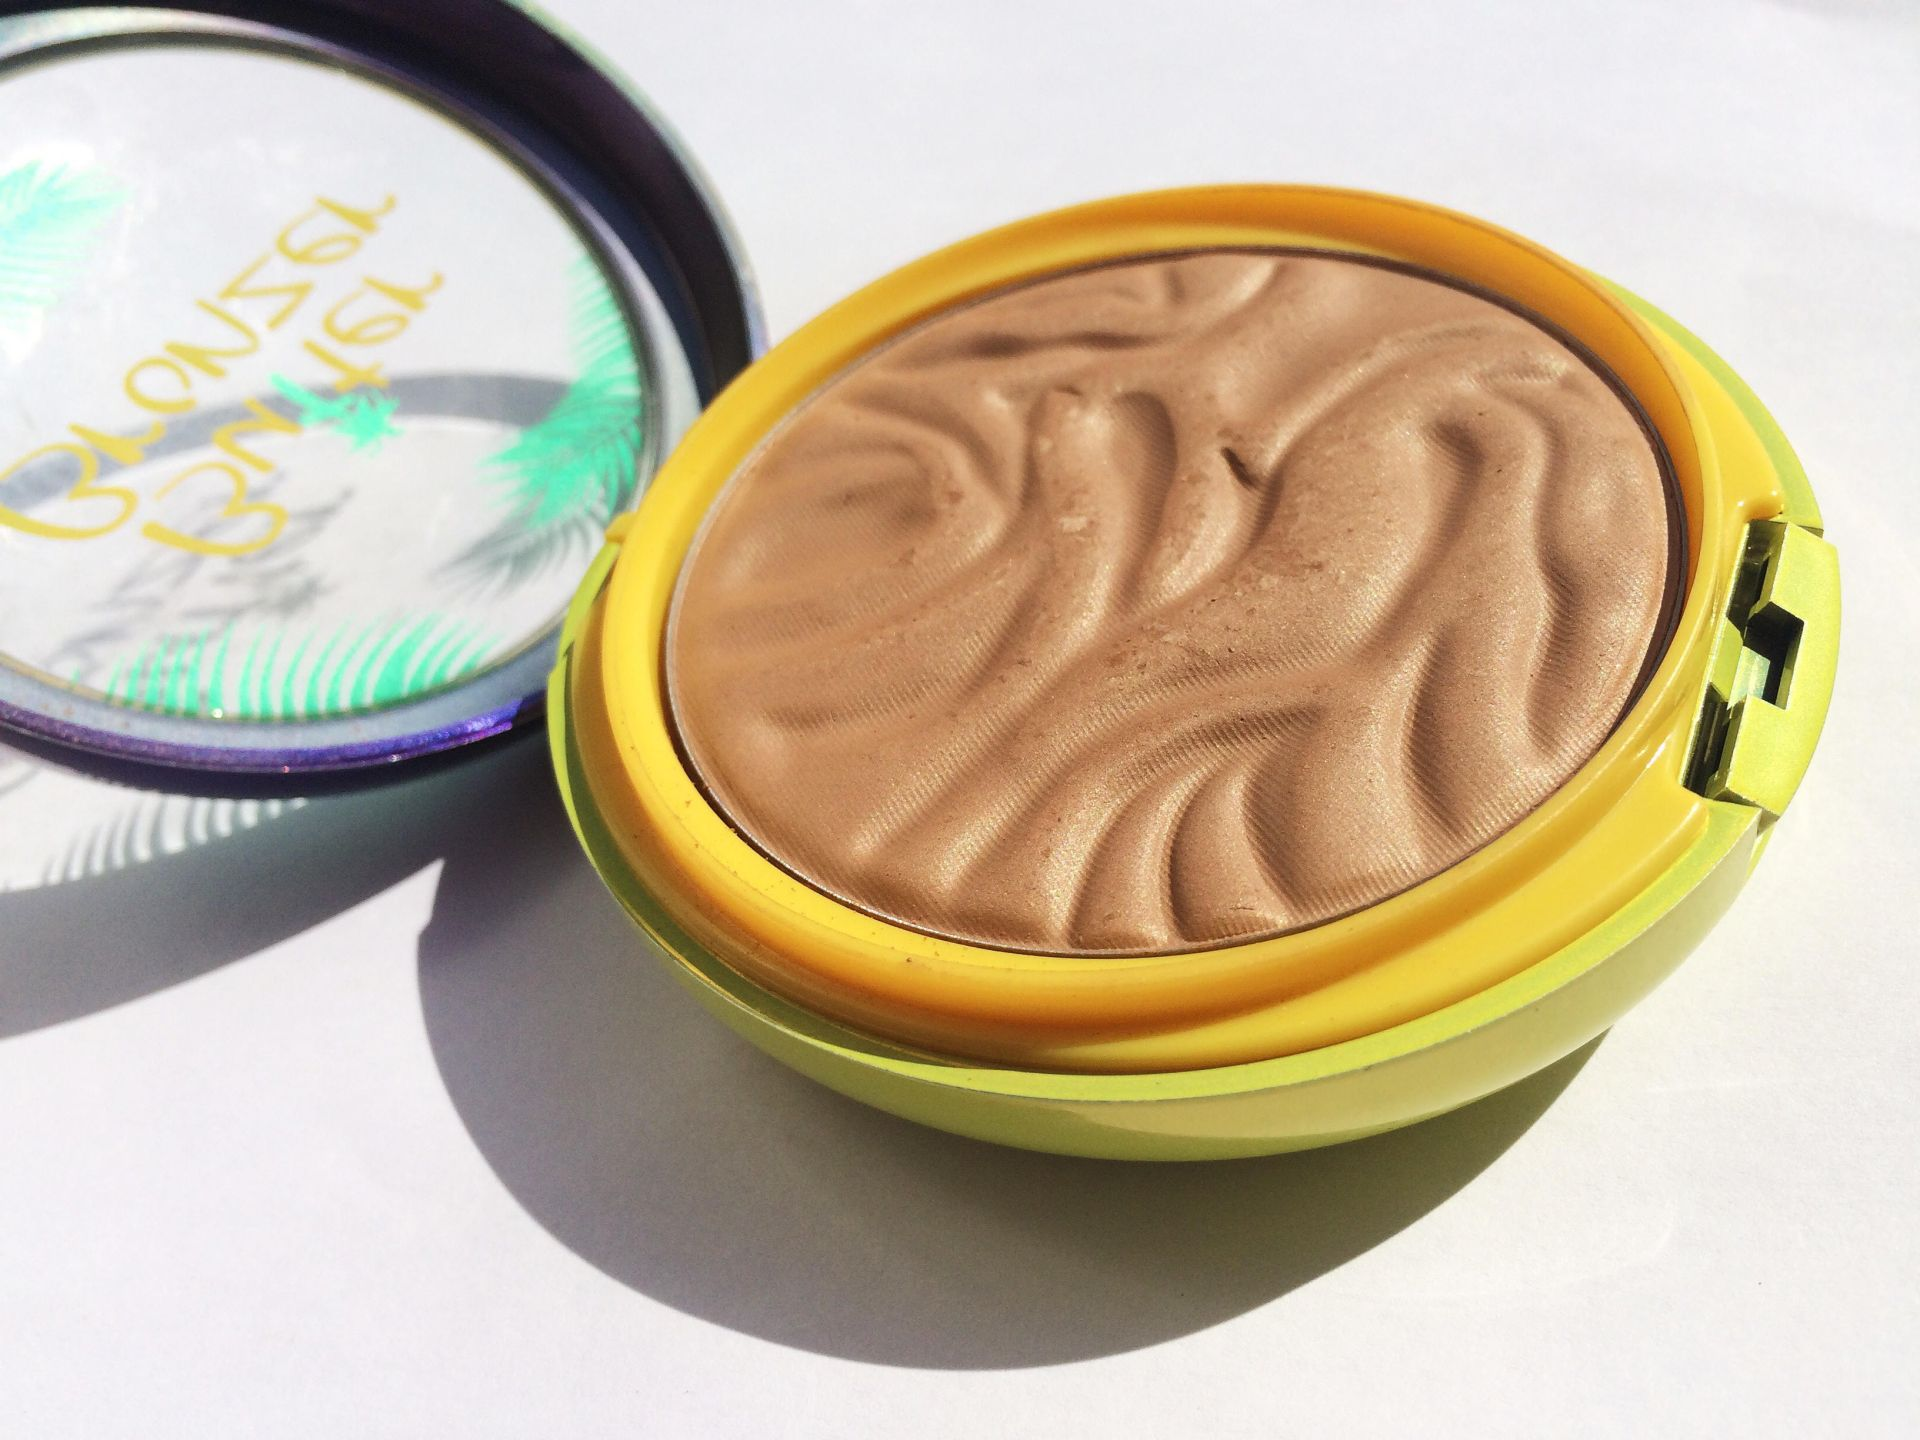 physicians-formula-butter-bronzer-11